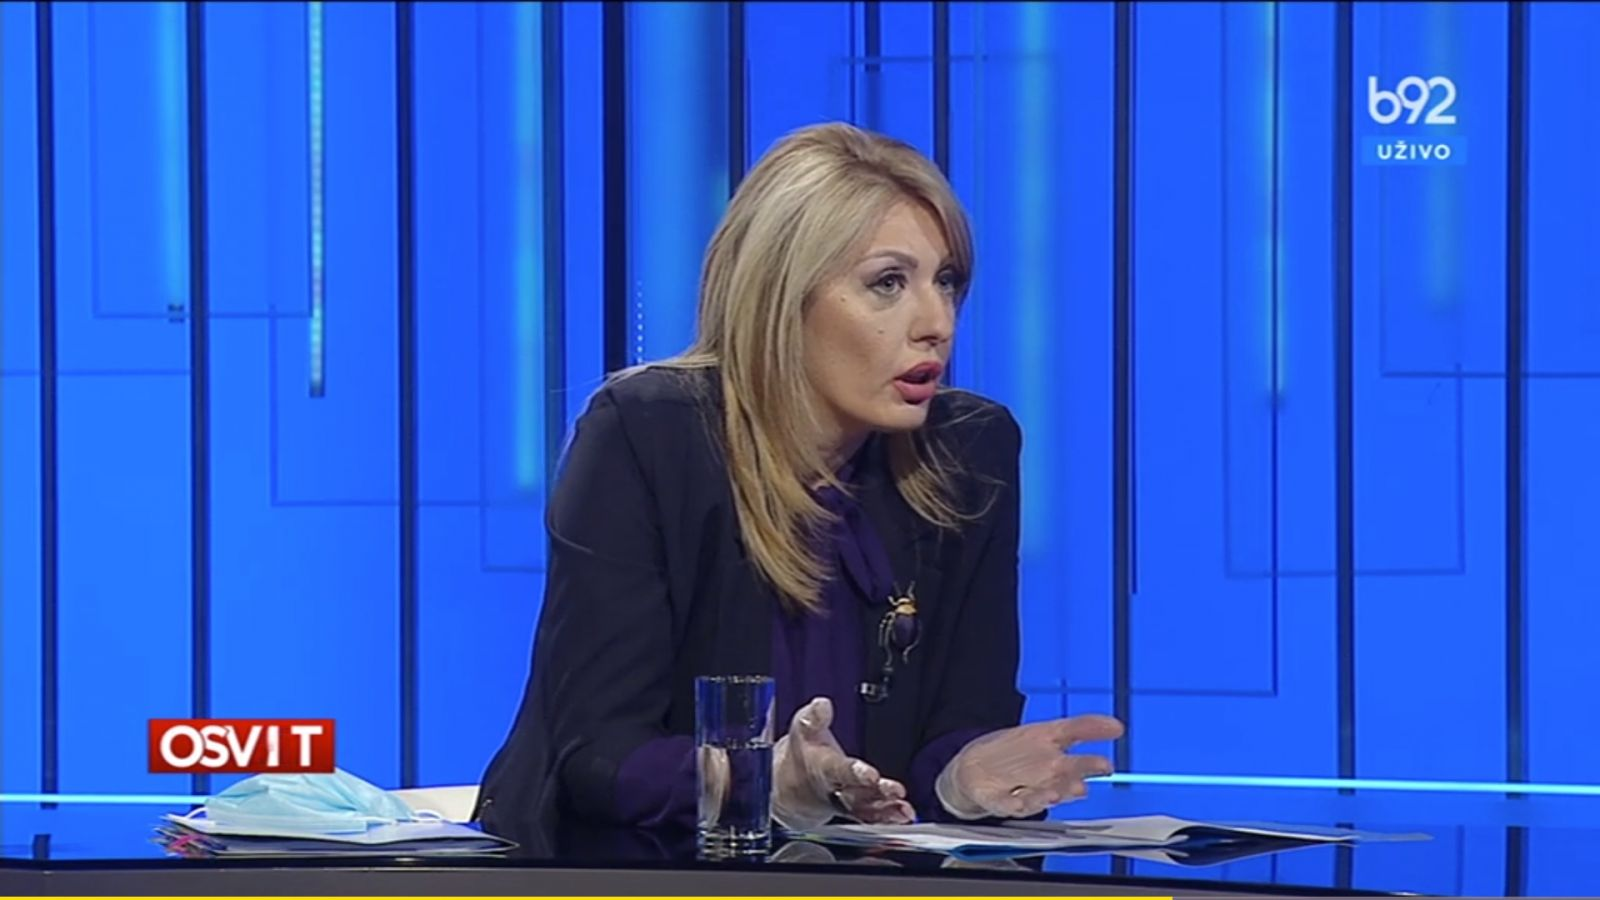 J. Joksimović: We expect the EU and Lajčák to focus on the implementation of the Brussels Agreement